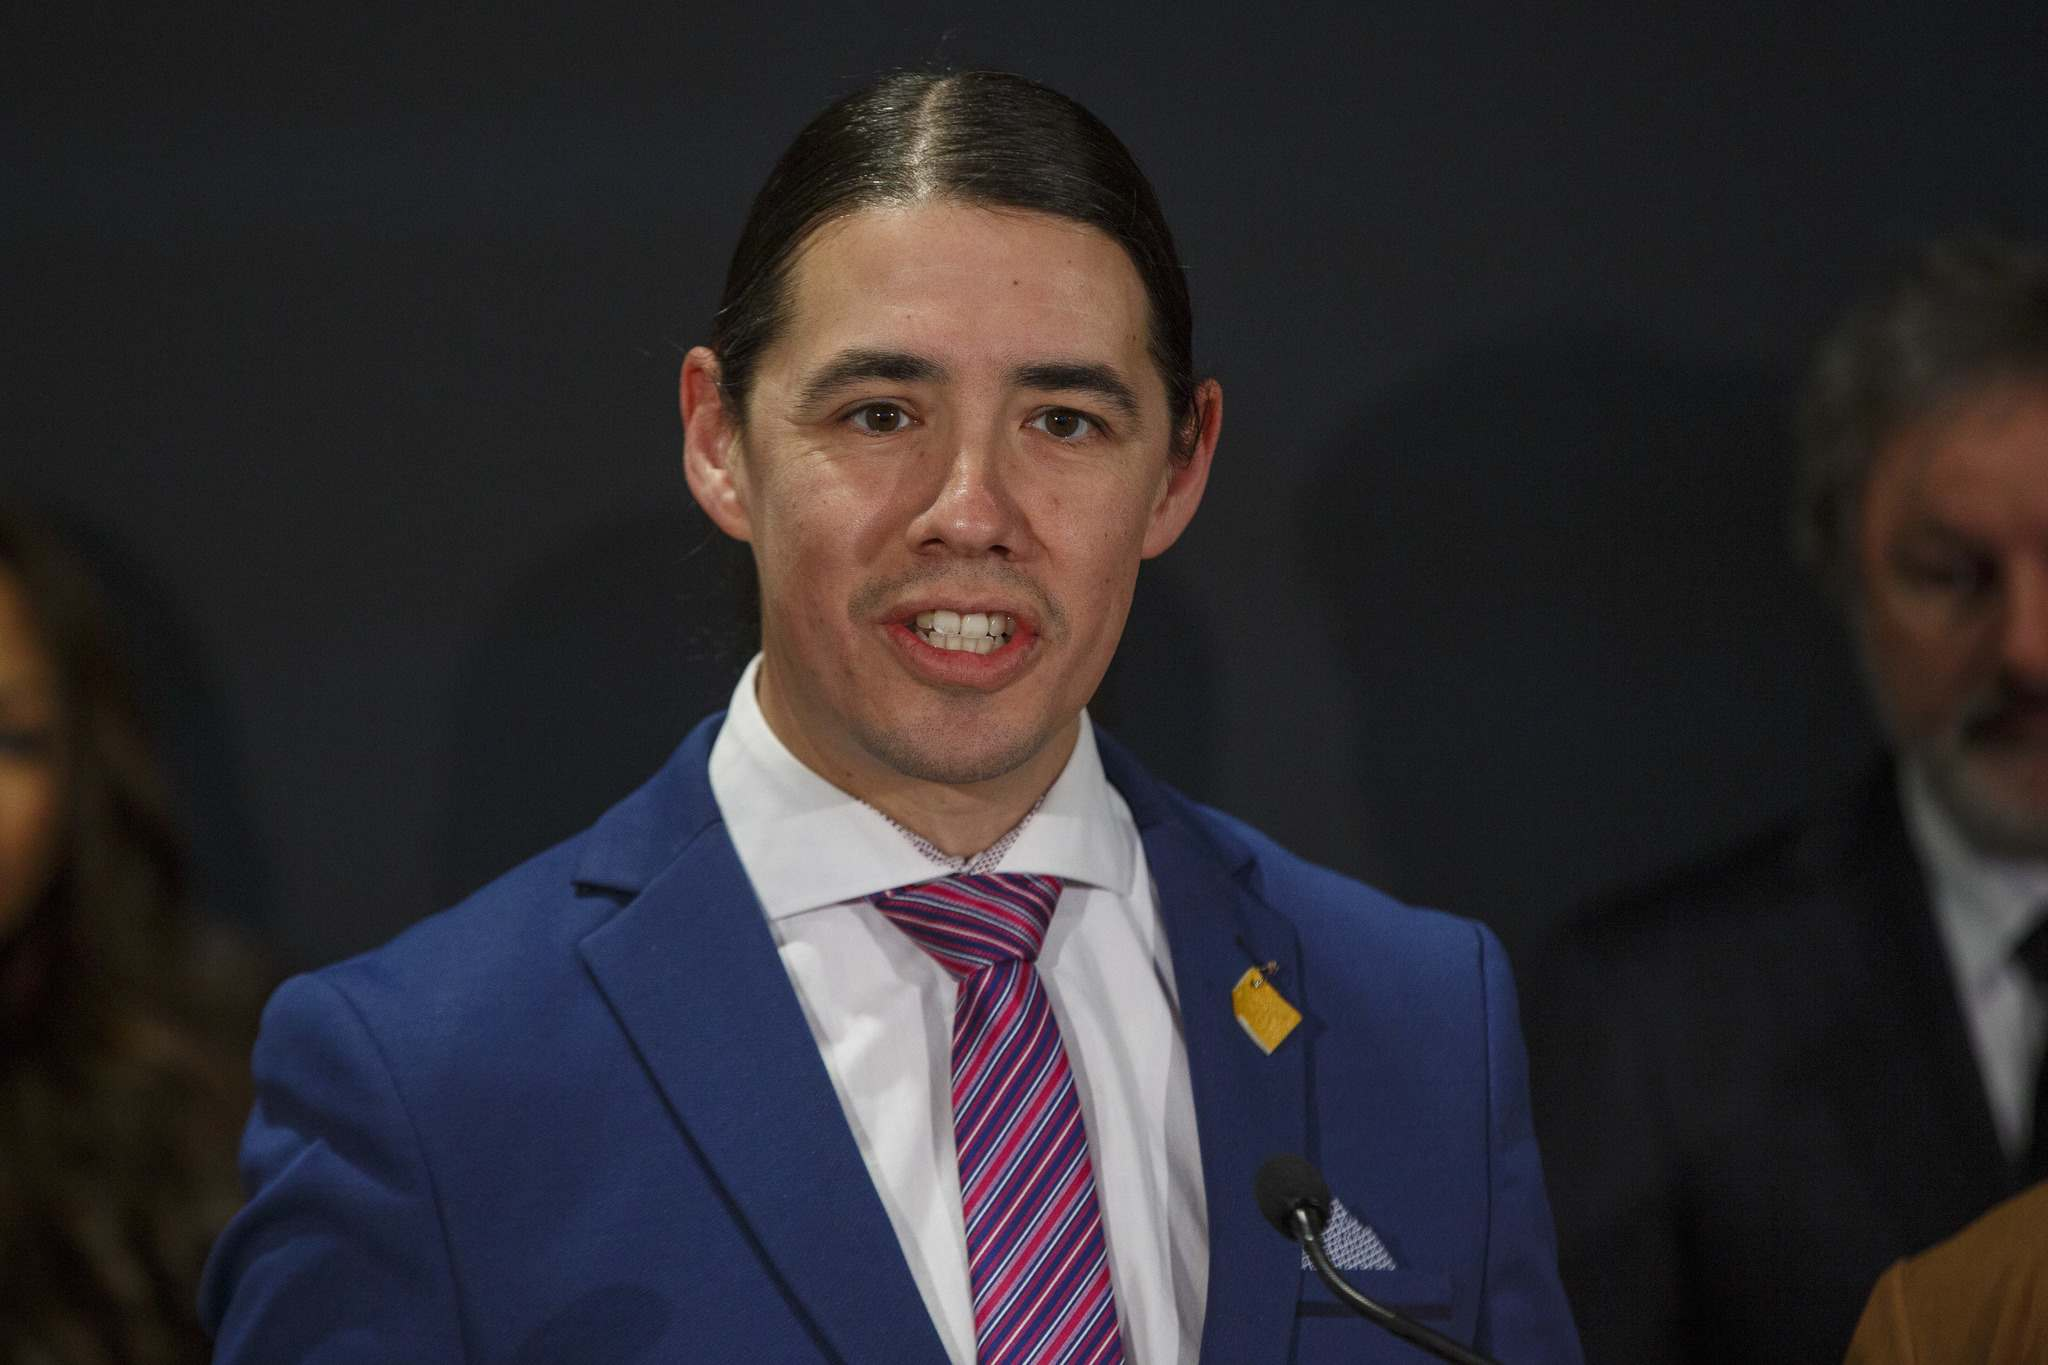 Robert-Falcon Ouellette first ran to become mayor of Winnipeg before moving to federal politics and defeating NDP veteran Pat Martin to become Liberal MP for Winnipeg Centre. (Mike Deal / Winnipeg Free Press files)</p>